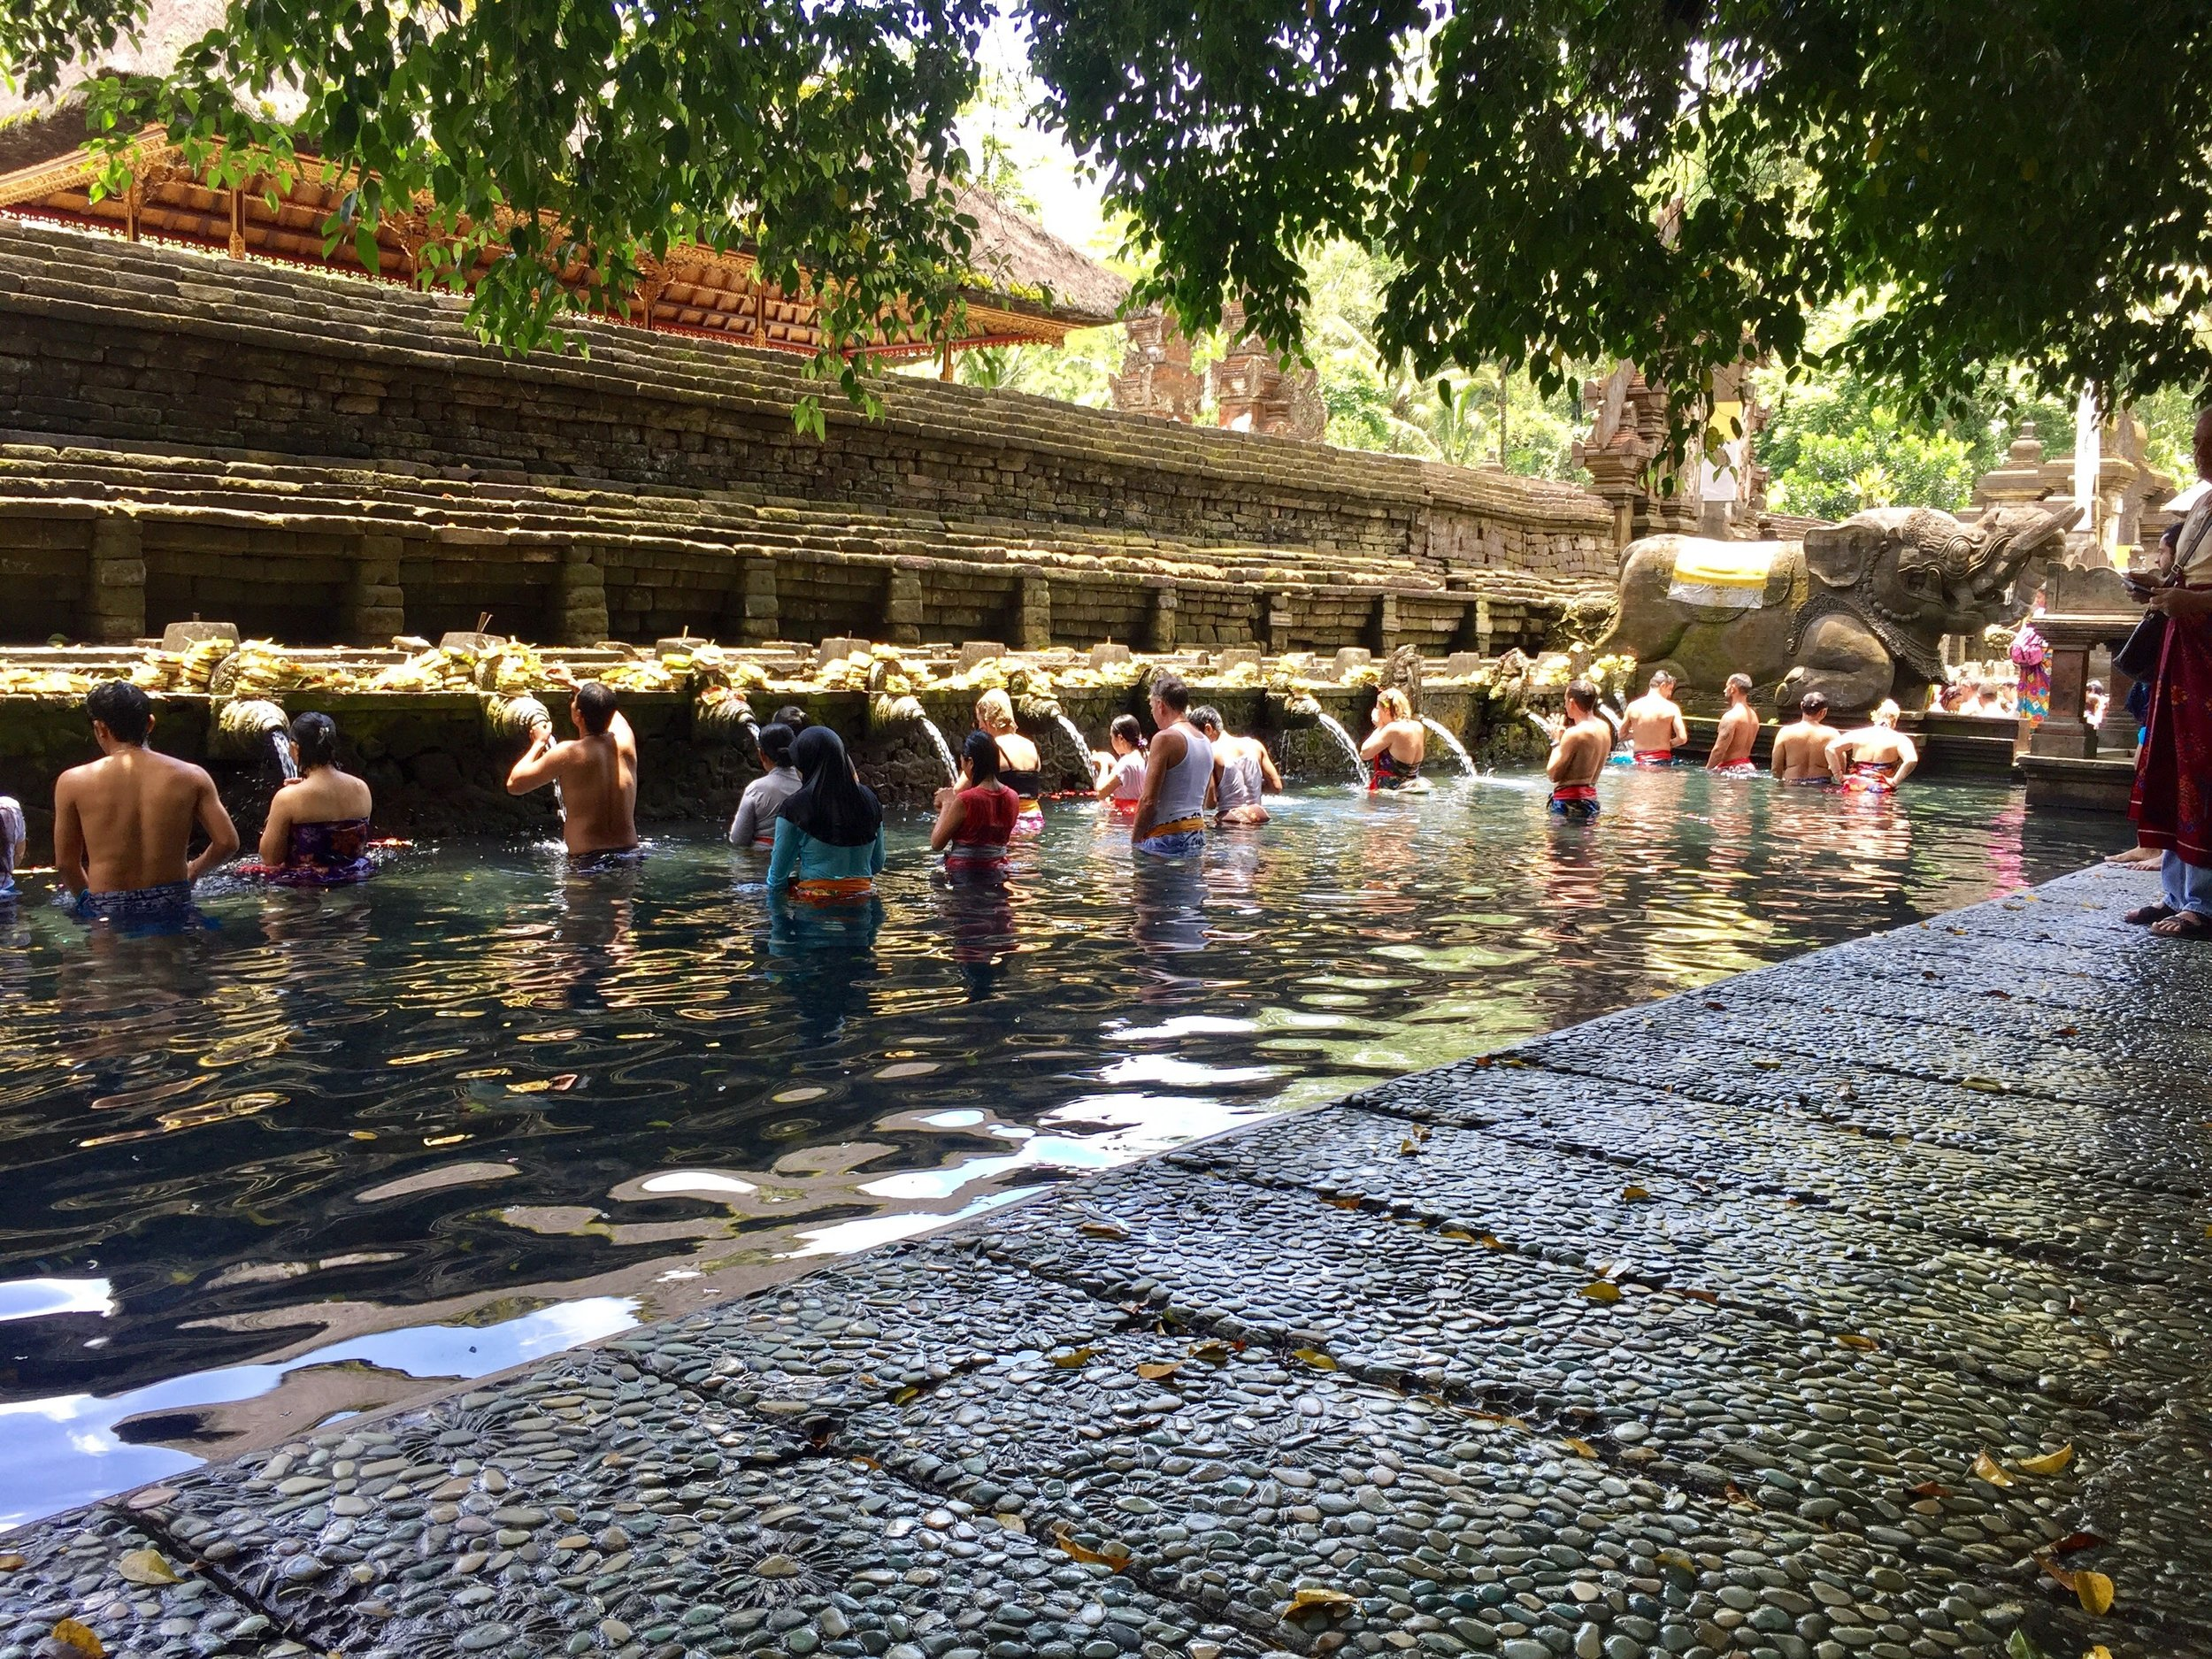 I fell in love with the Balinese culture, the more I learned about it. This is the holy water temple Tirta Empul where people from all over the world go to pray and get spiritual blessings.